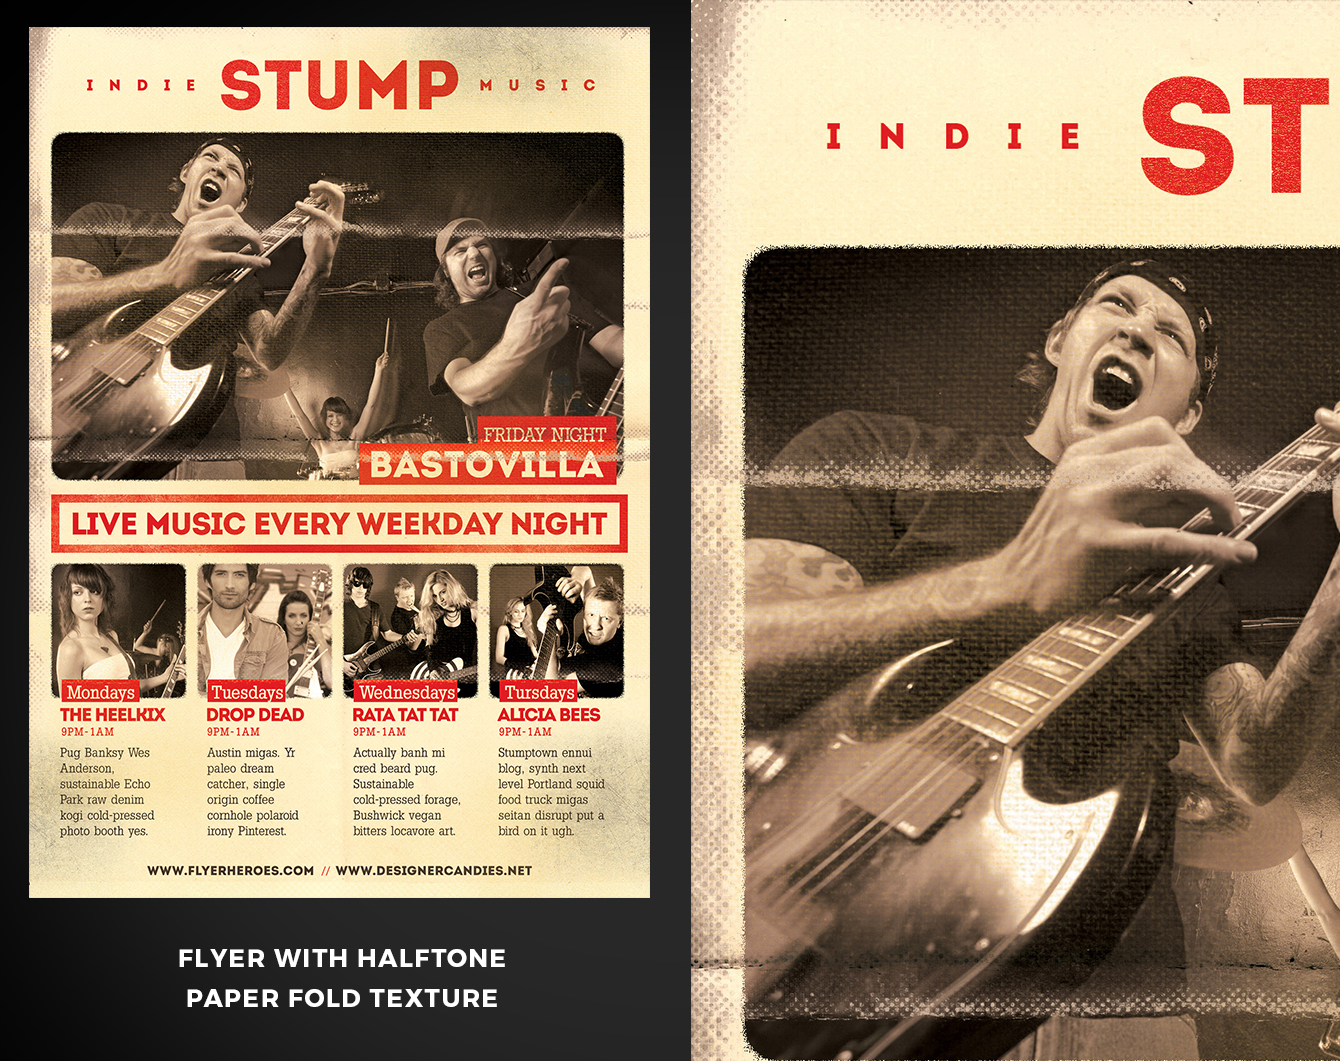 An example of using paper fold textures on Indie Stump Poster Template.